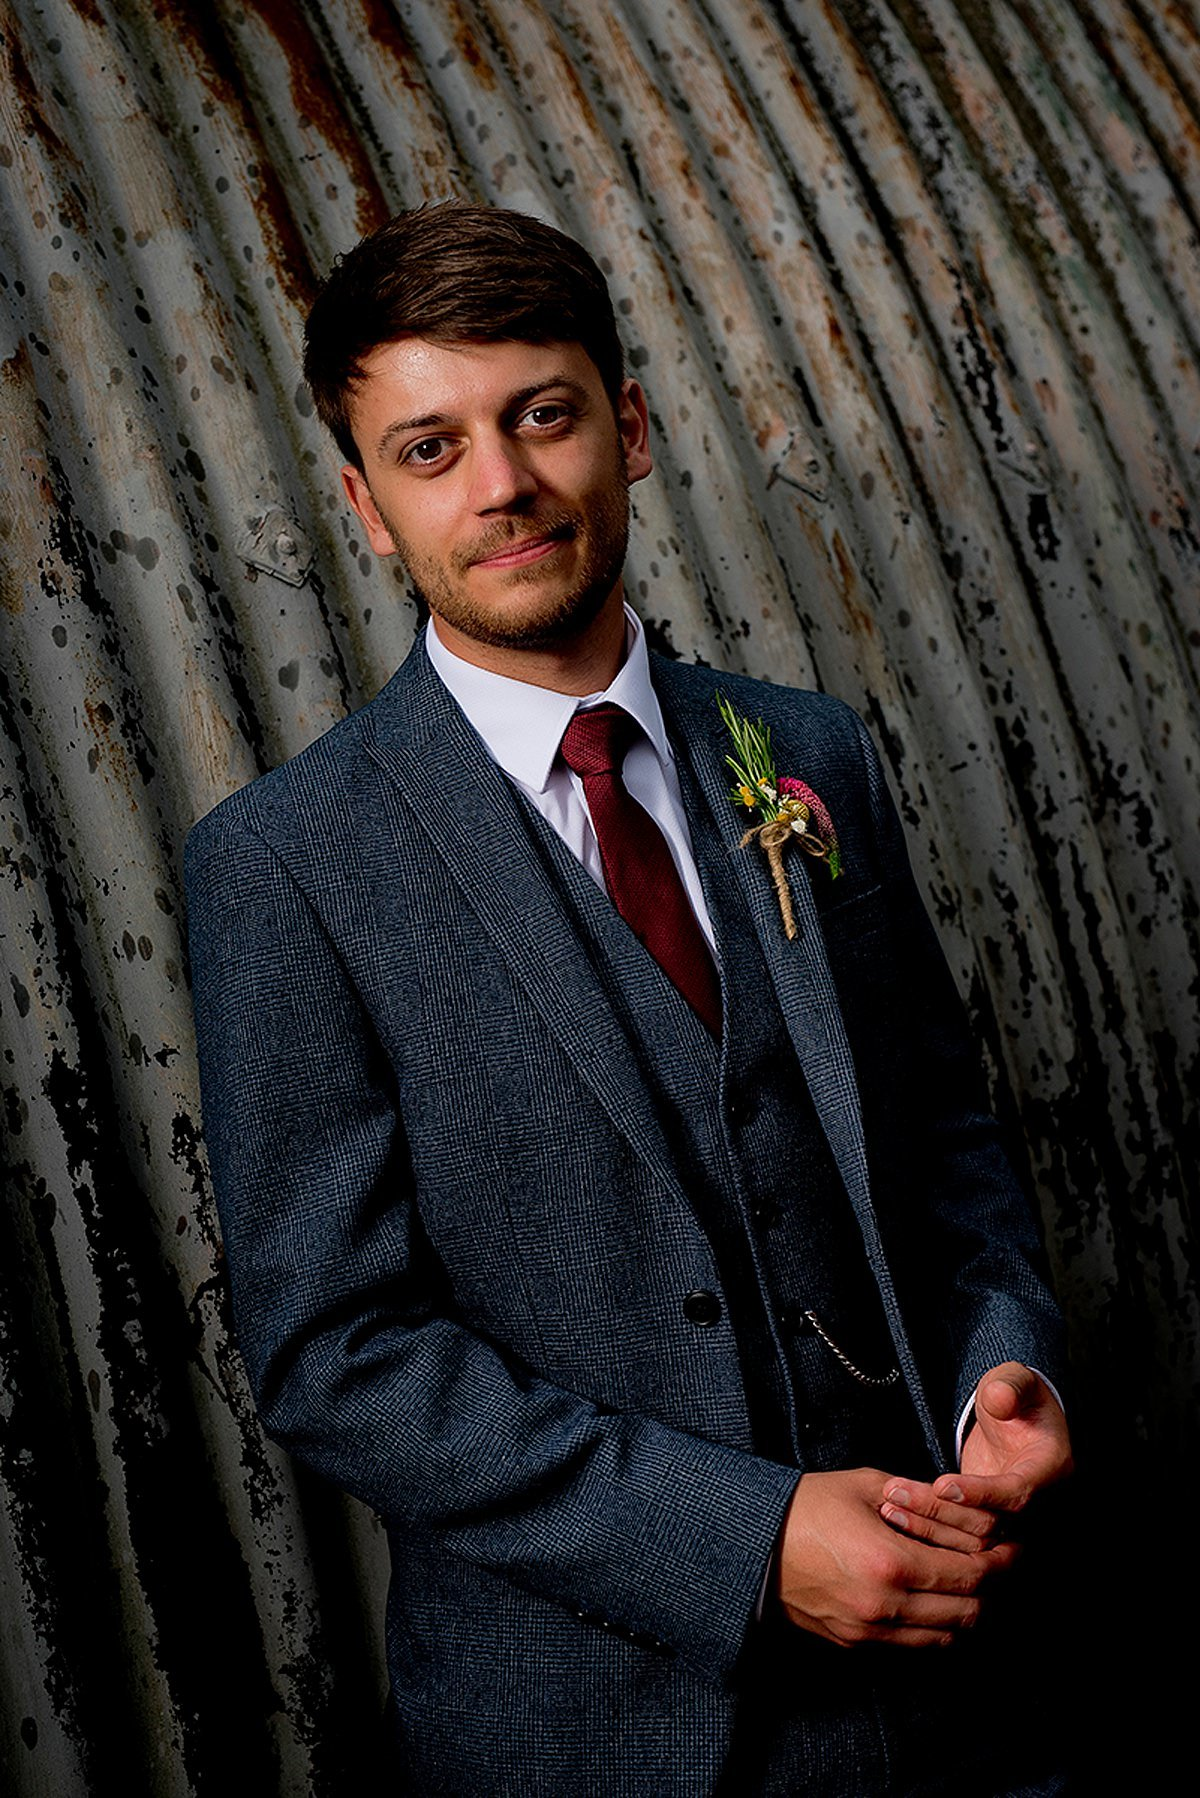 Groom portrait at The Carriage Hall